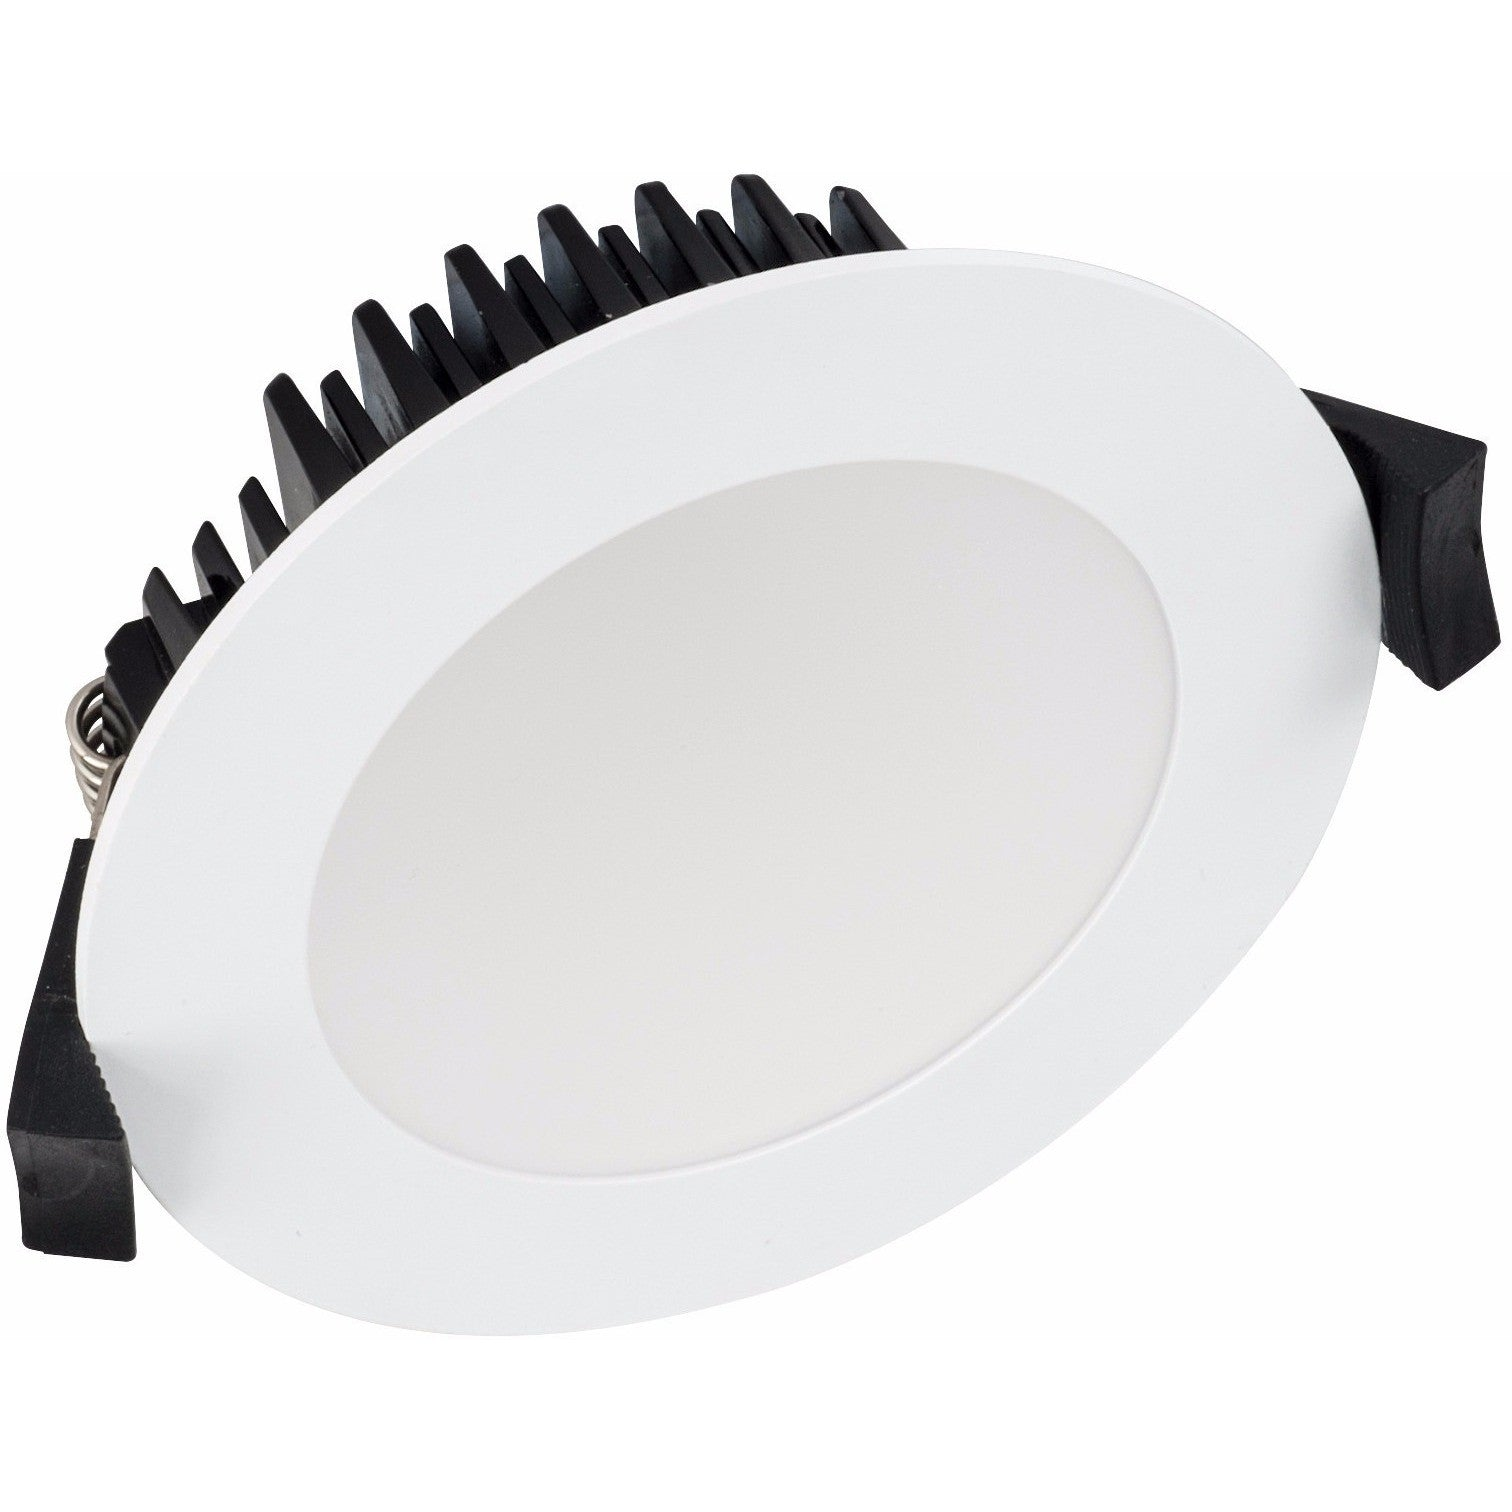 AAEC5602C-WHT-4000K - 10w White Round LED Downlight 4000k